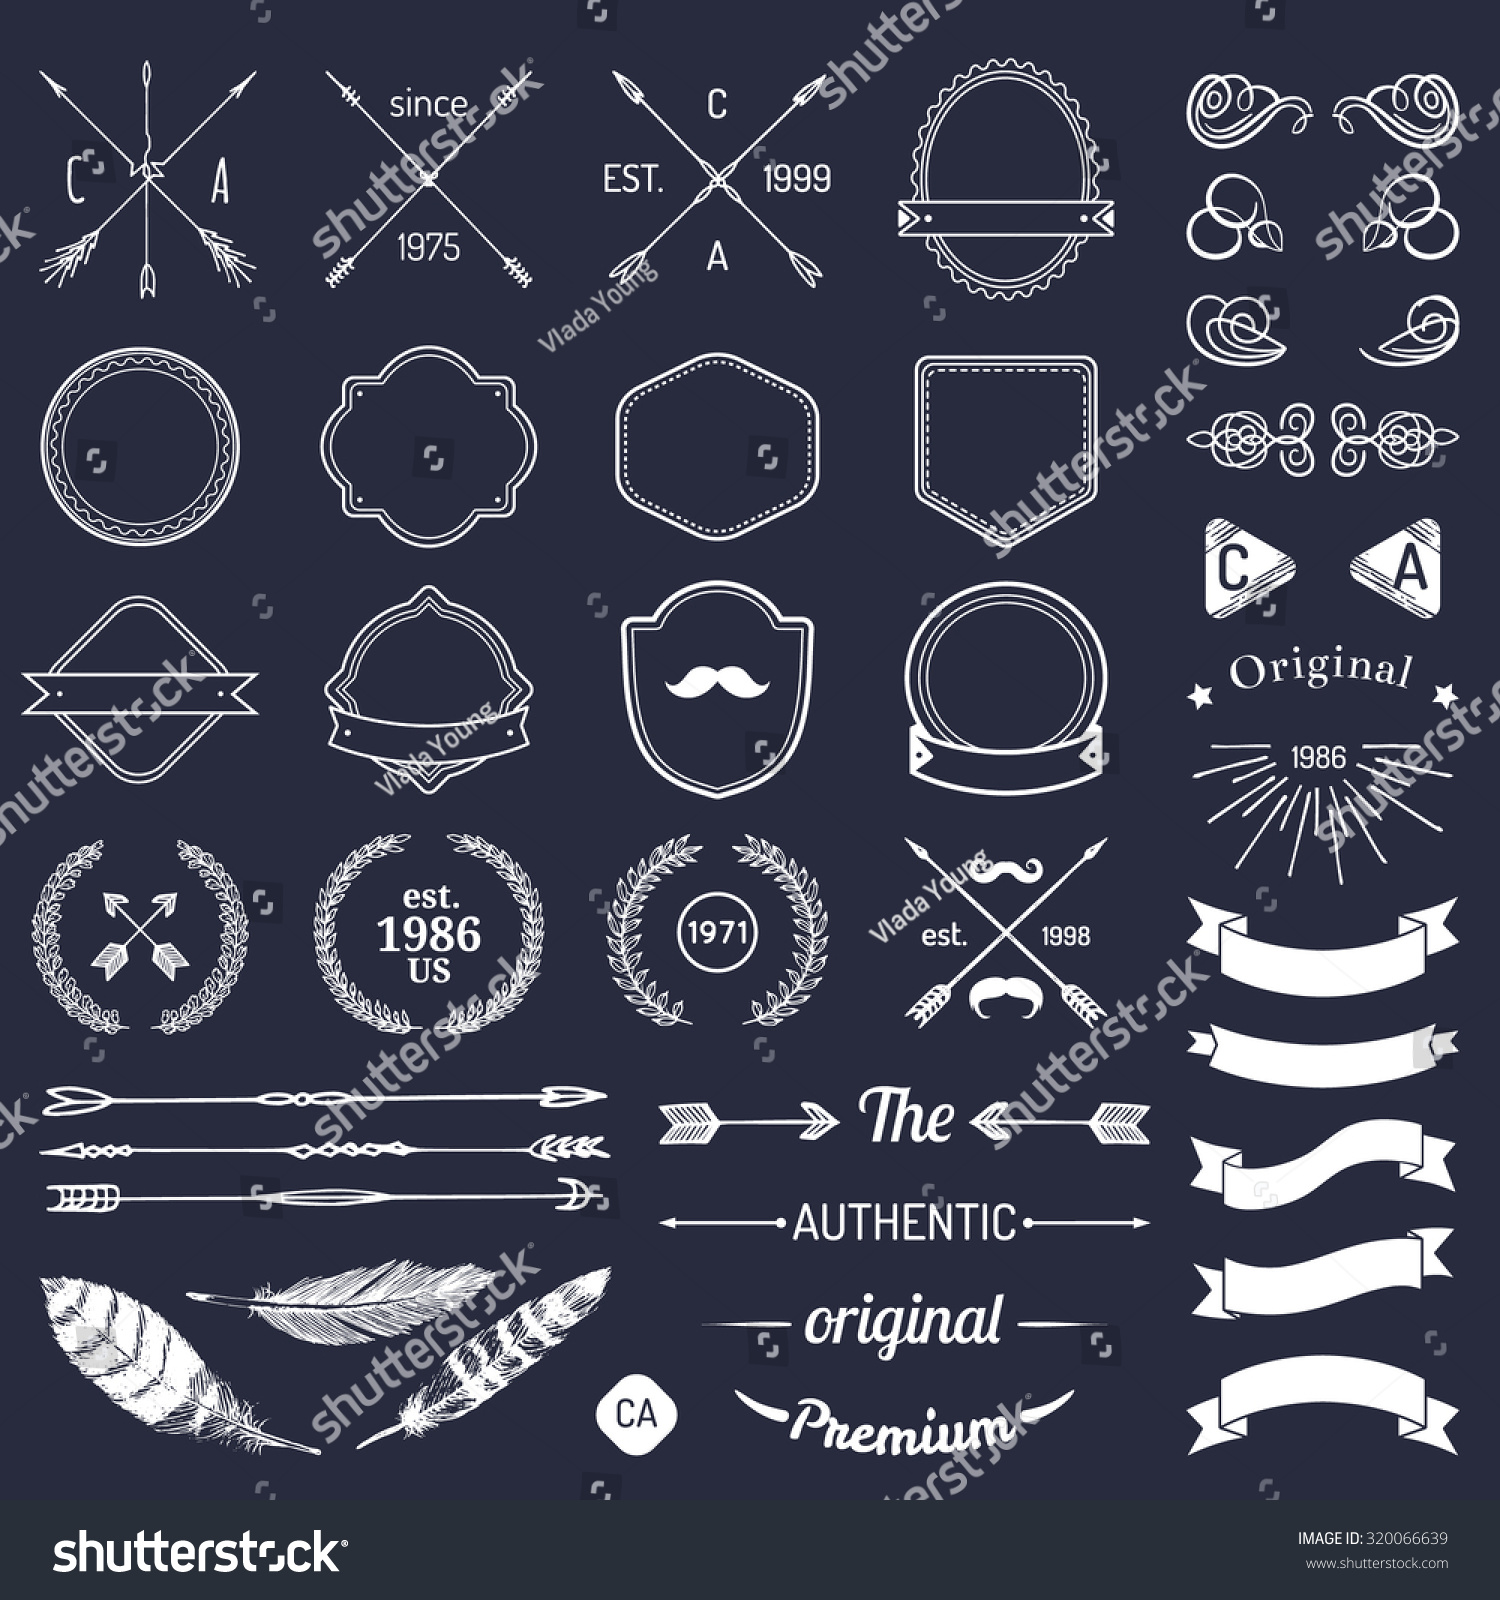 Vintage Hipster Logo Elements Arrows Ribbons Stock Vector ...